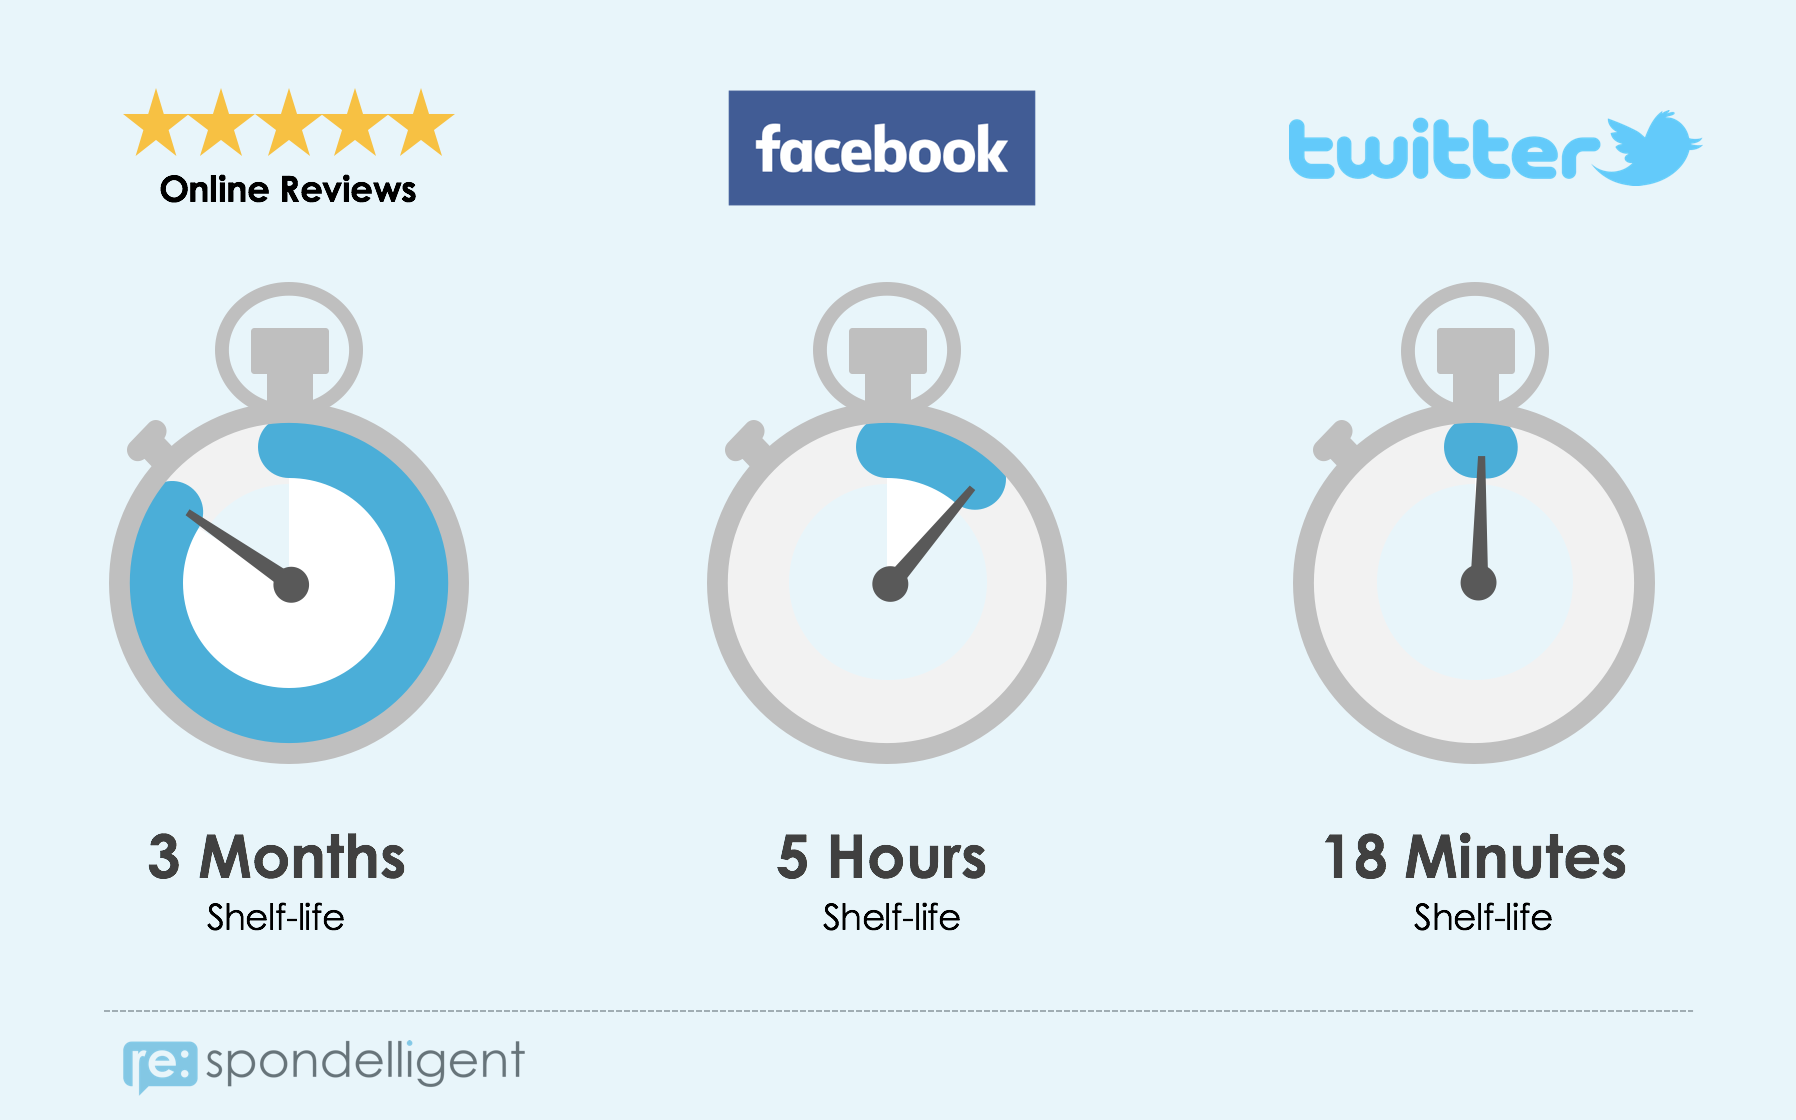 The Lifespan of online reviews and social media posts